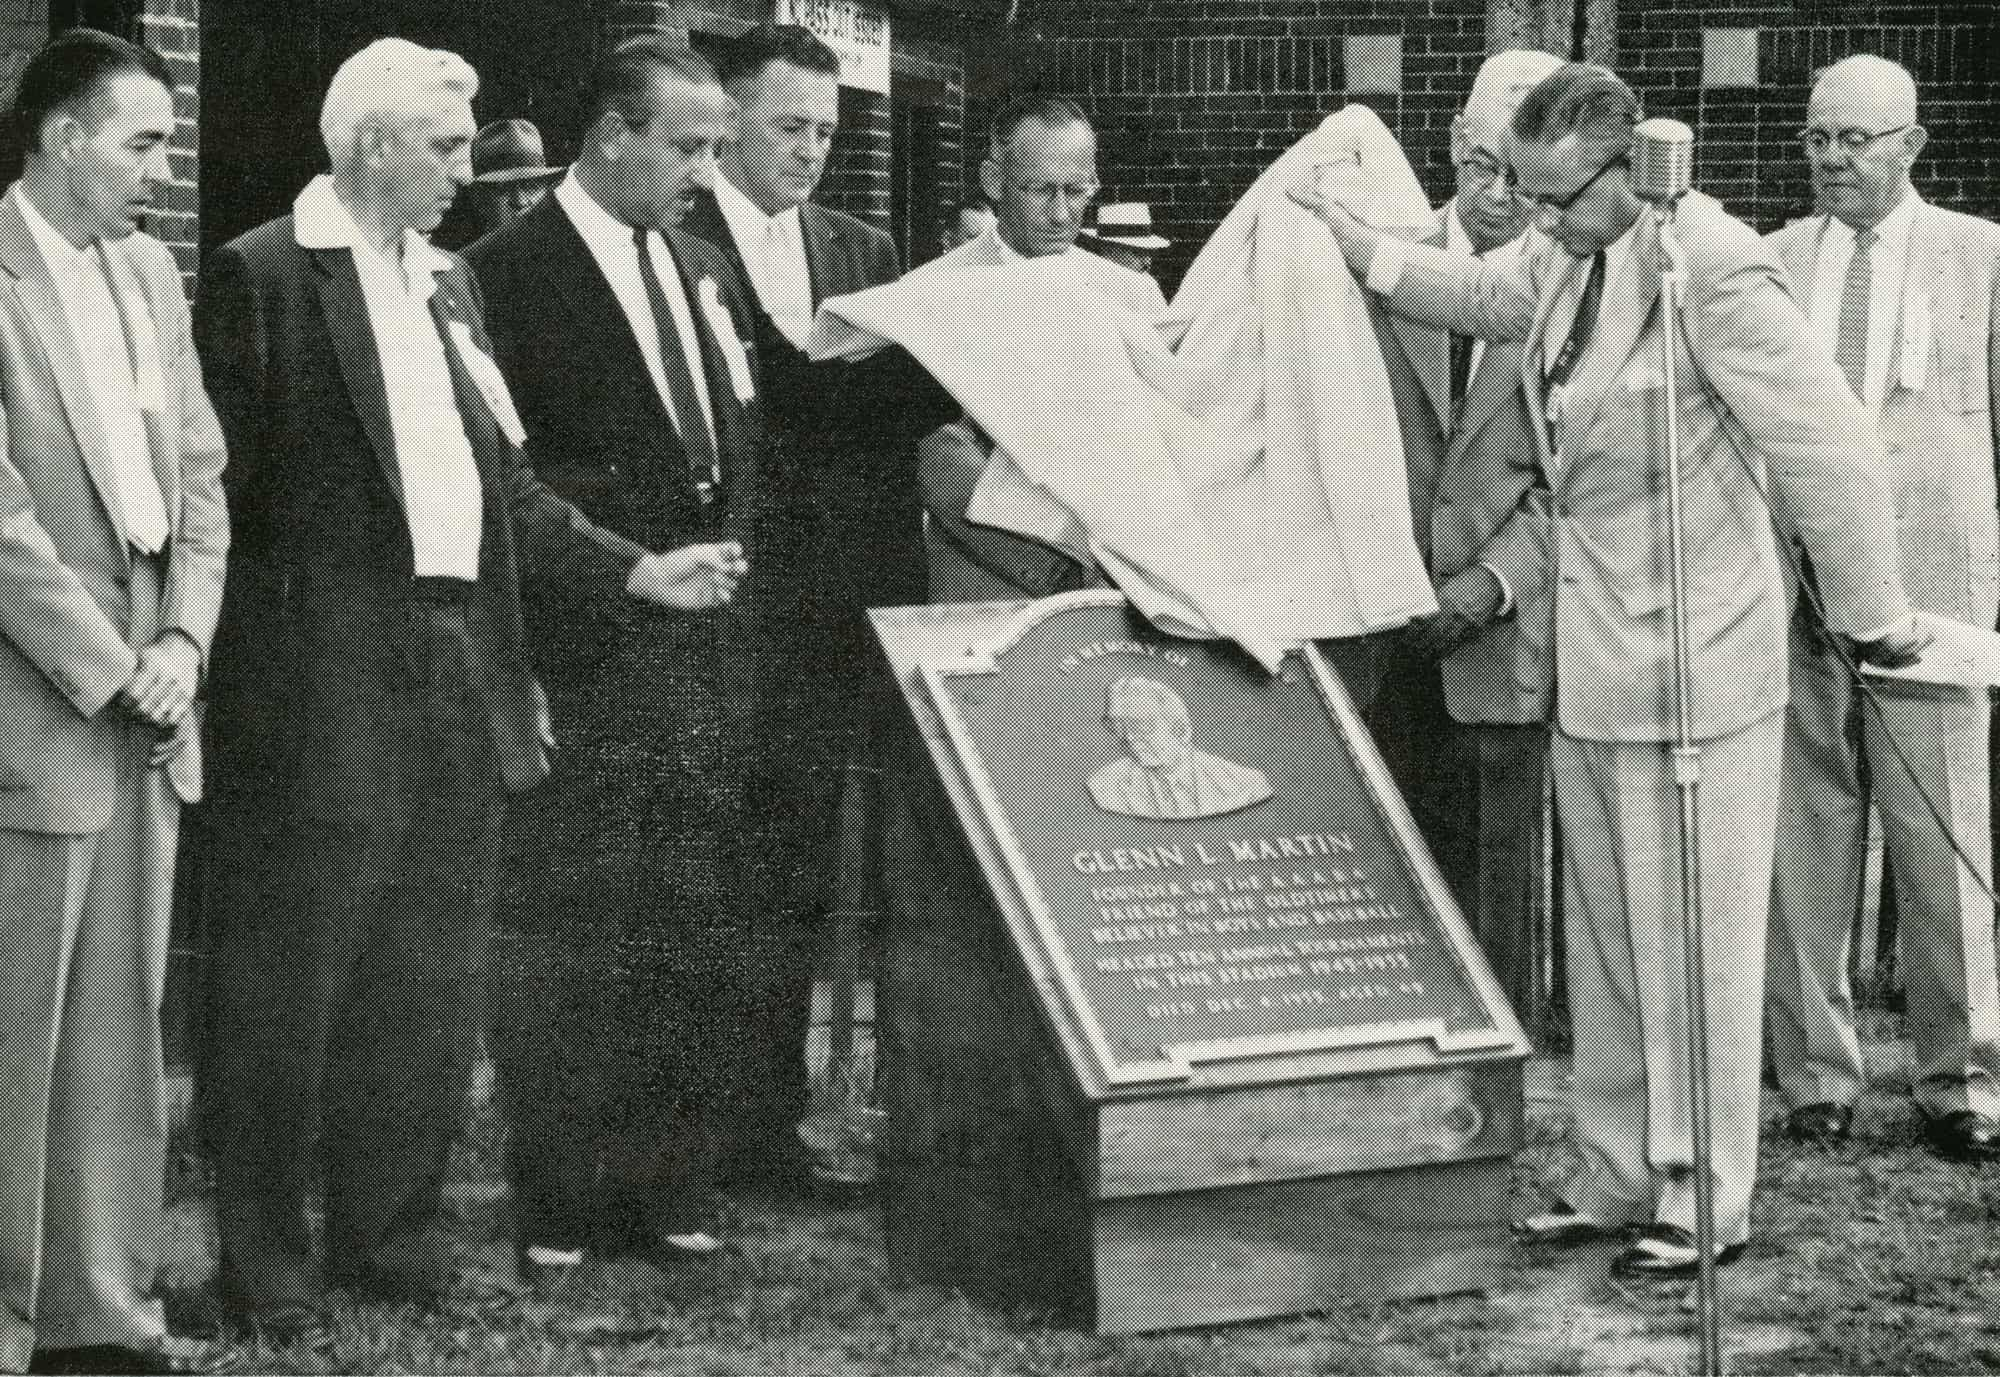 Glenn L. Martin Plaque unveiled 1956 at Point